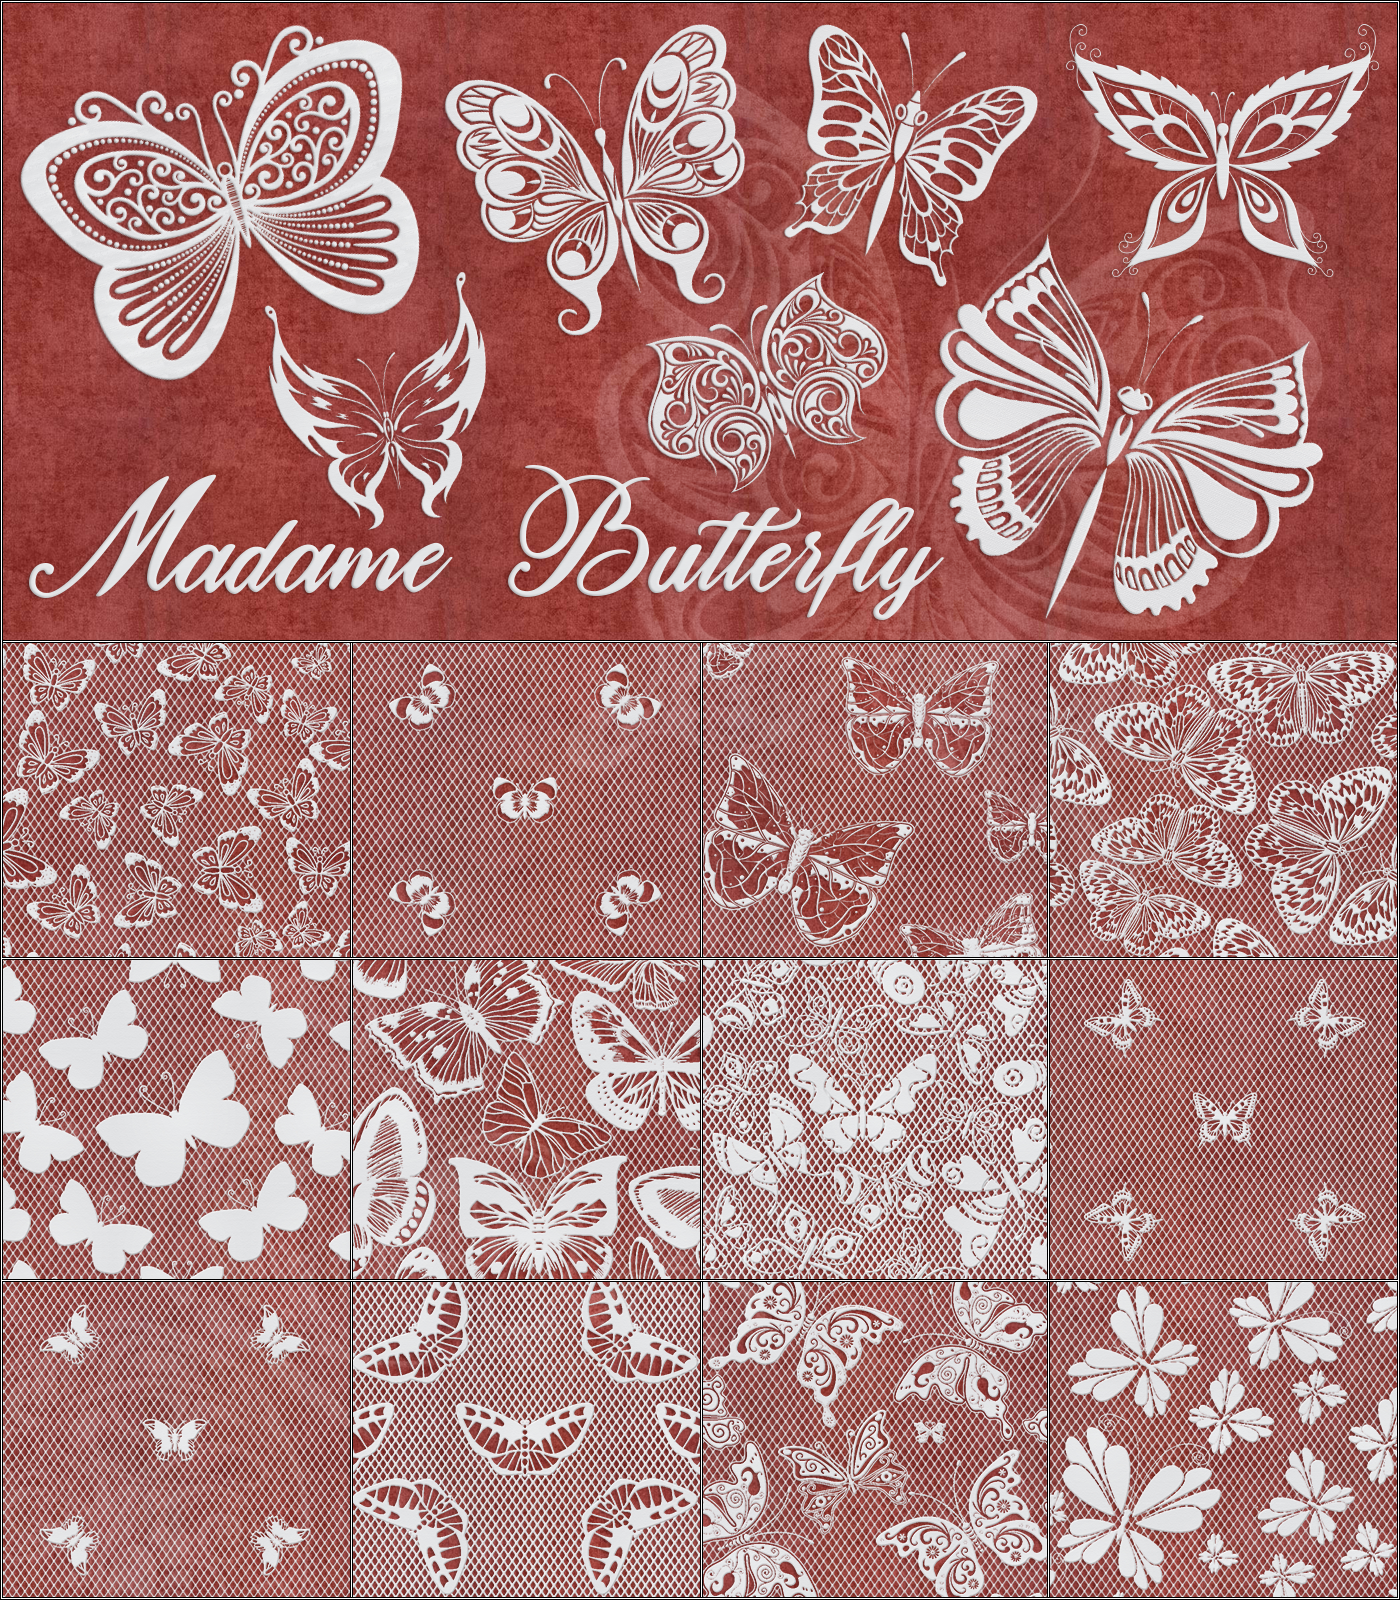 Madame Butterfly by Atenais